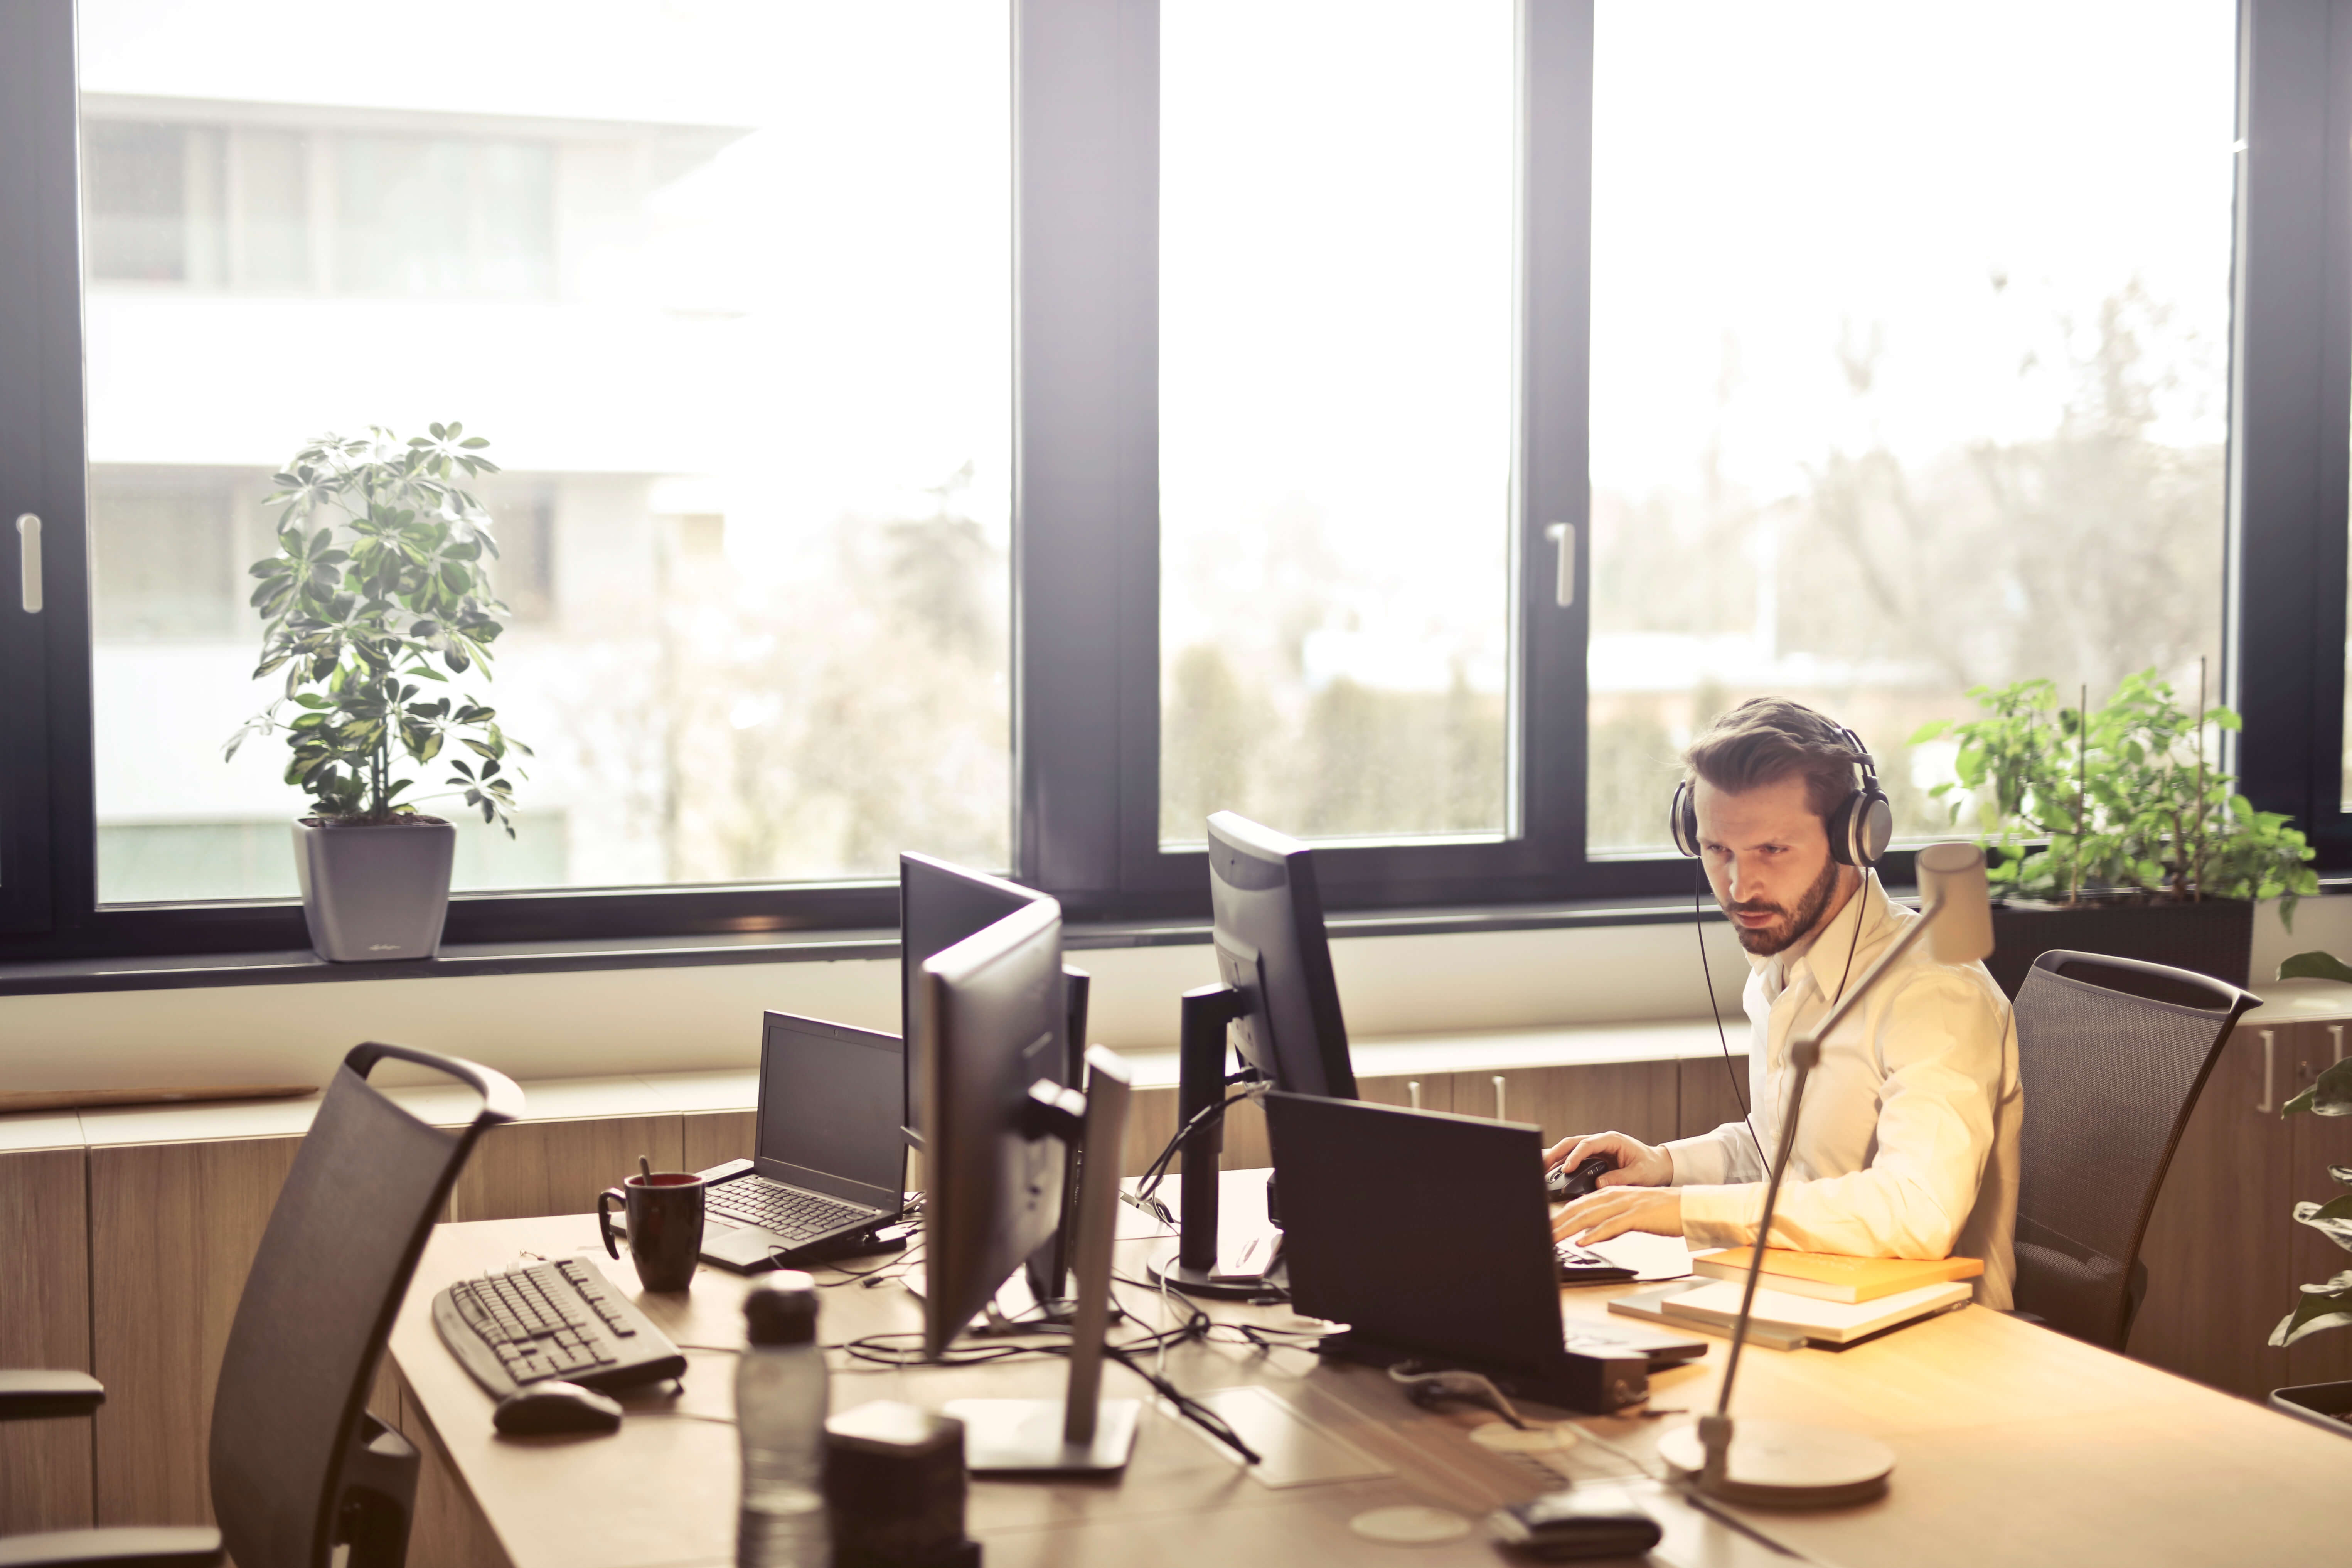 If You Have A Private Office Within Your Workspace, Point Your Desk So You  Are Facing Sideways To Team Members Walking By Or Wanting To Pop In.